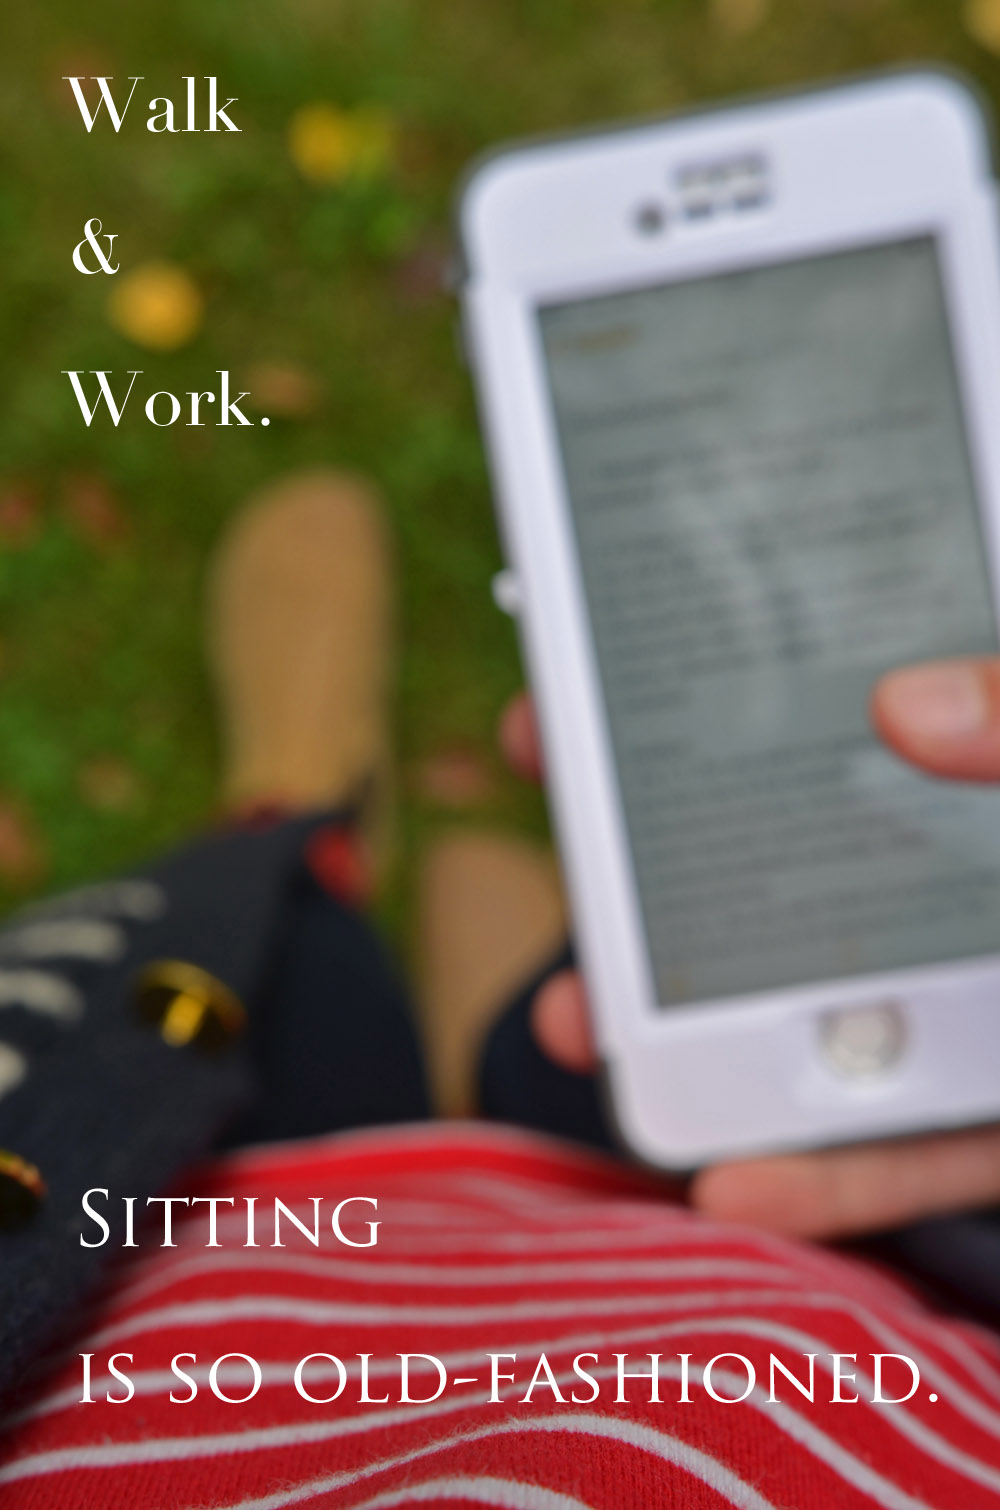 walk-and-work-sitting-is-so-old-fashioned